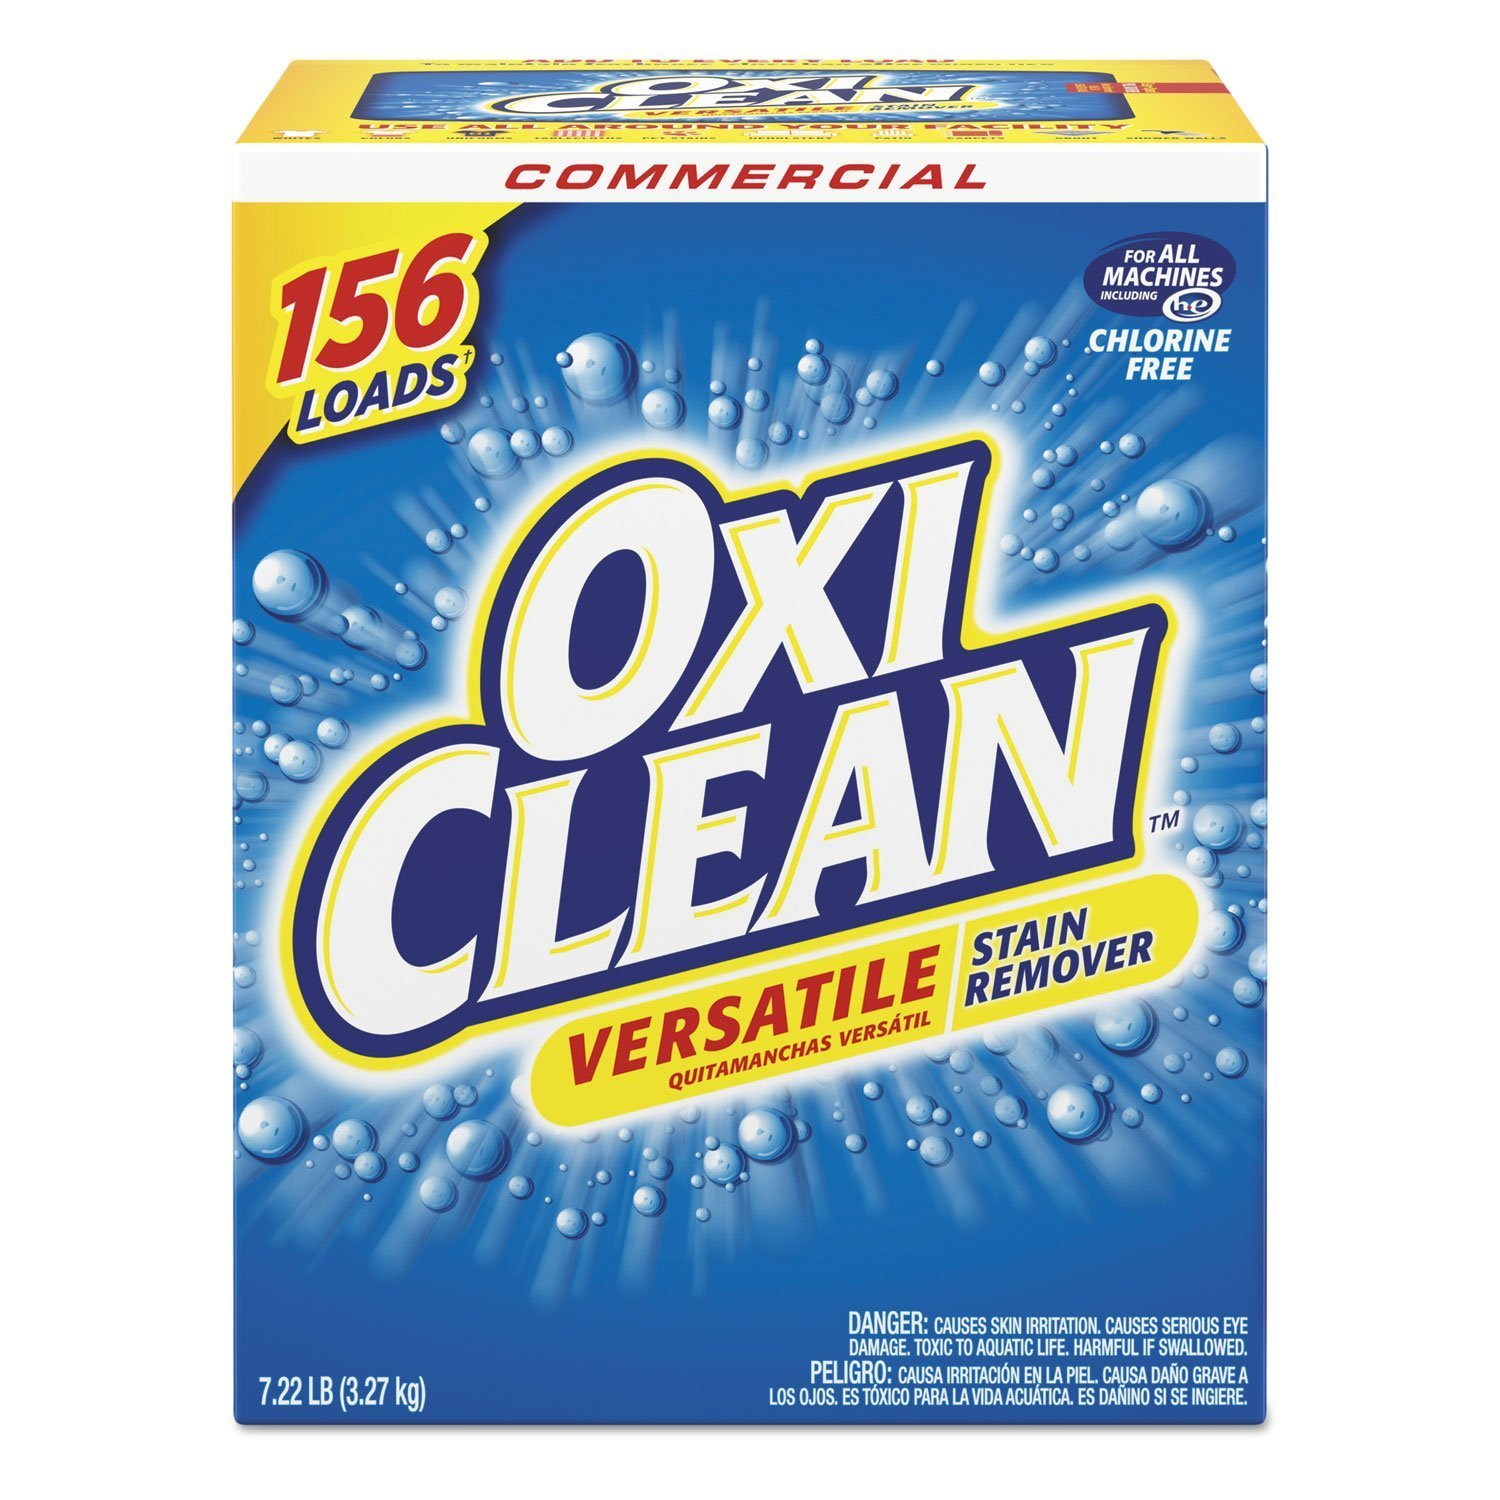 Arm & Hammer  57037-51791 OxiClean Versatile Stain Remover   7.22 lbs (Pack of 4) by Arm & Hammer